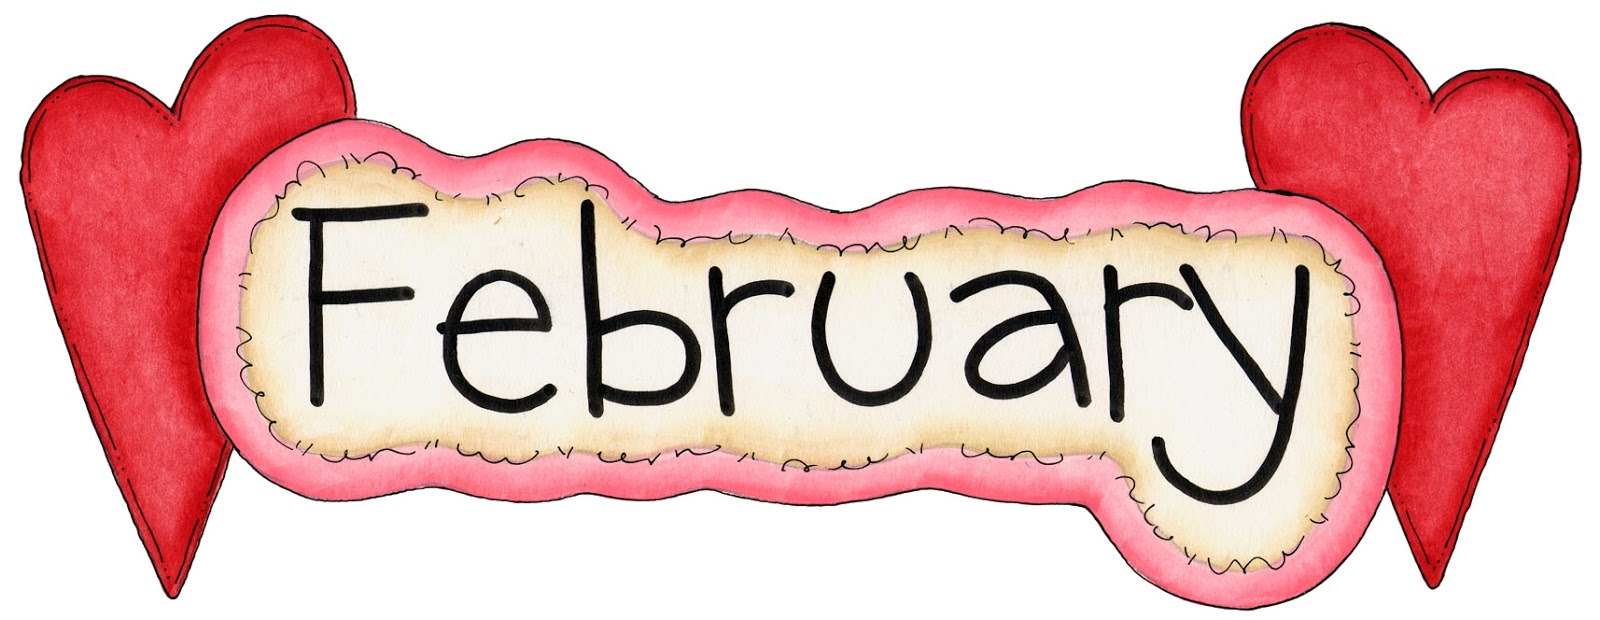 February clip art images .